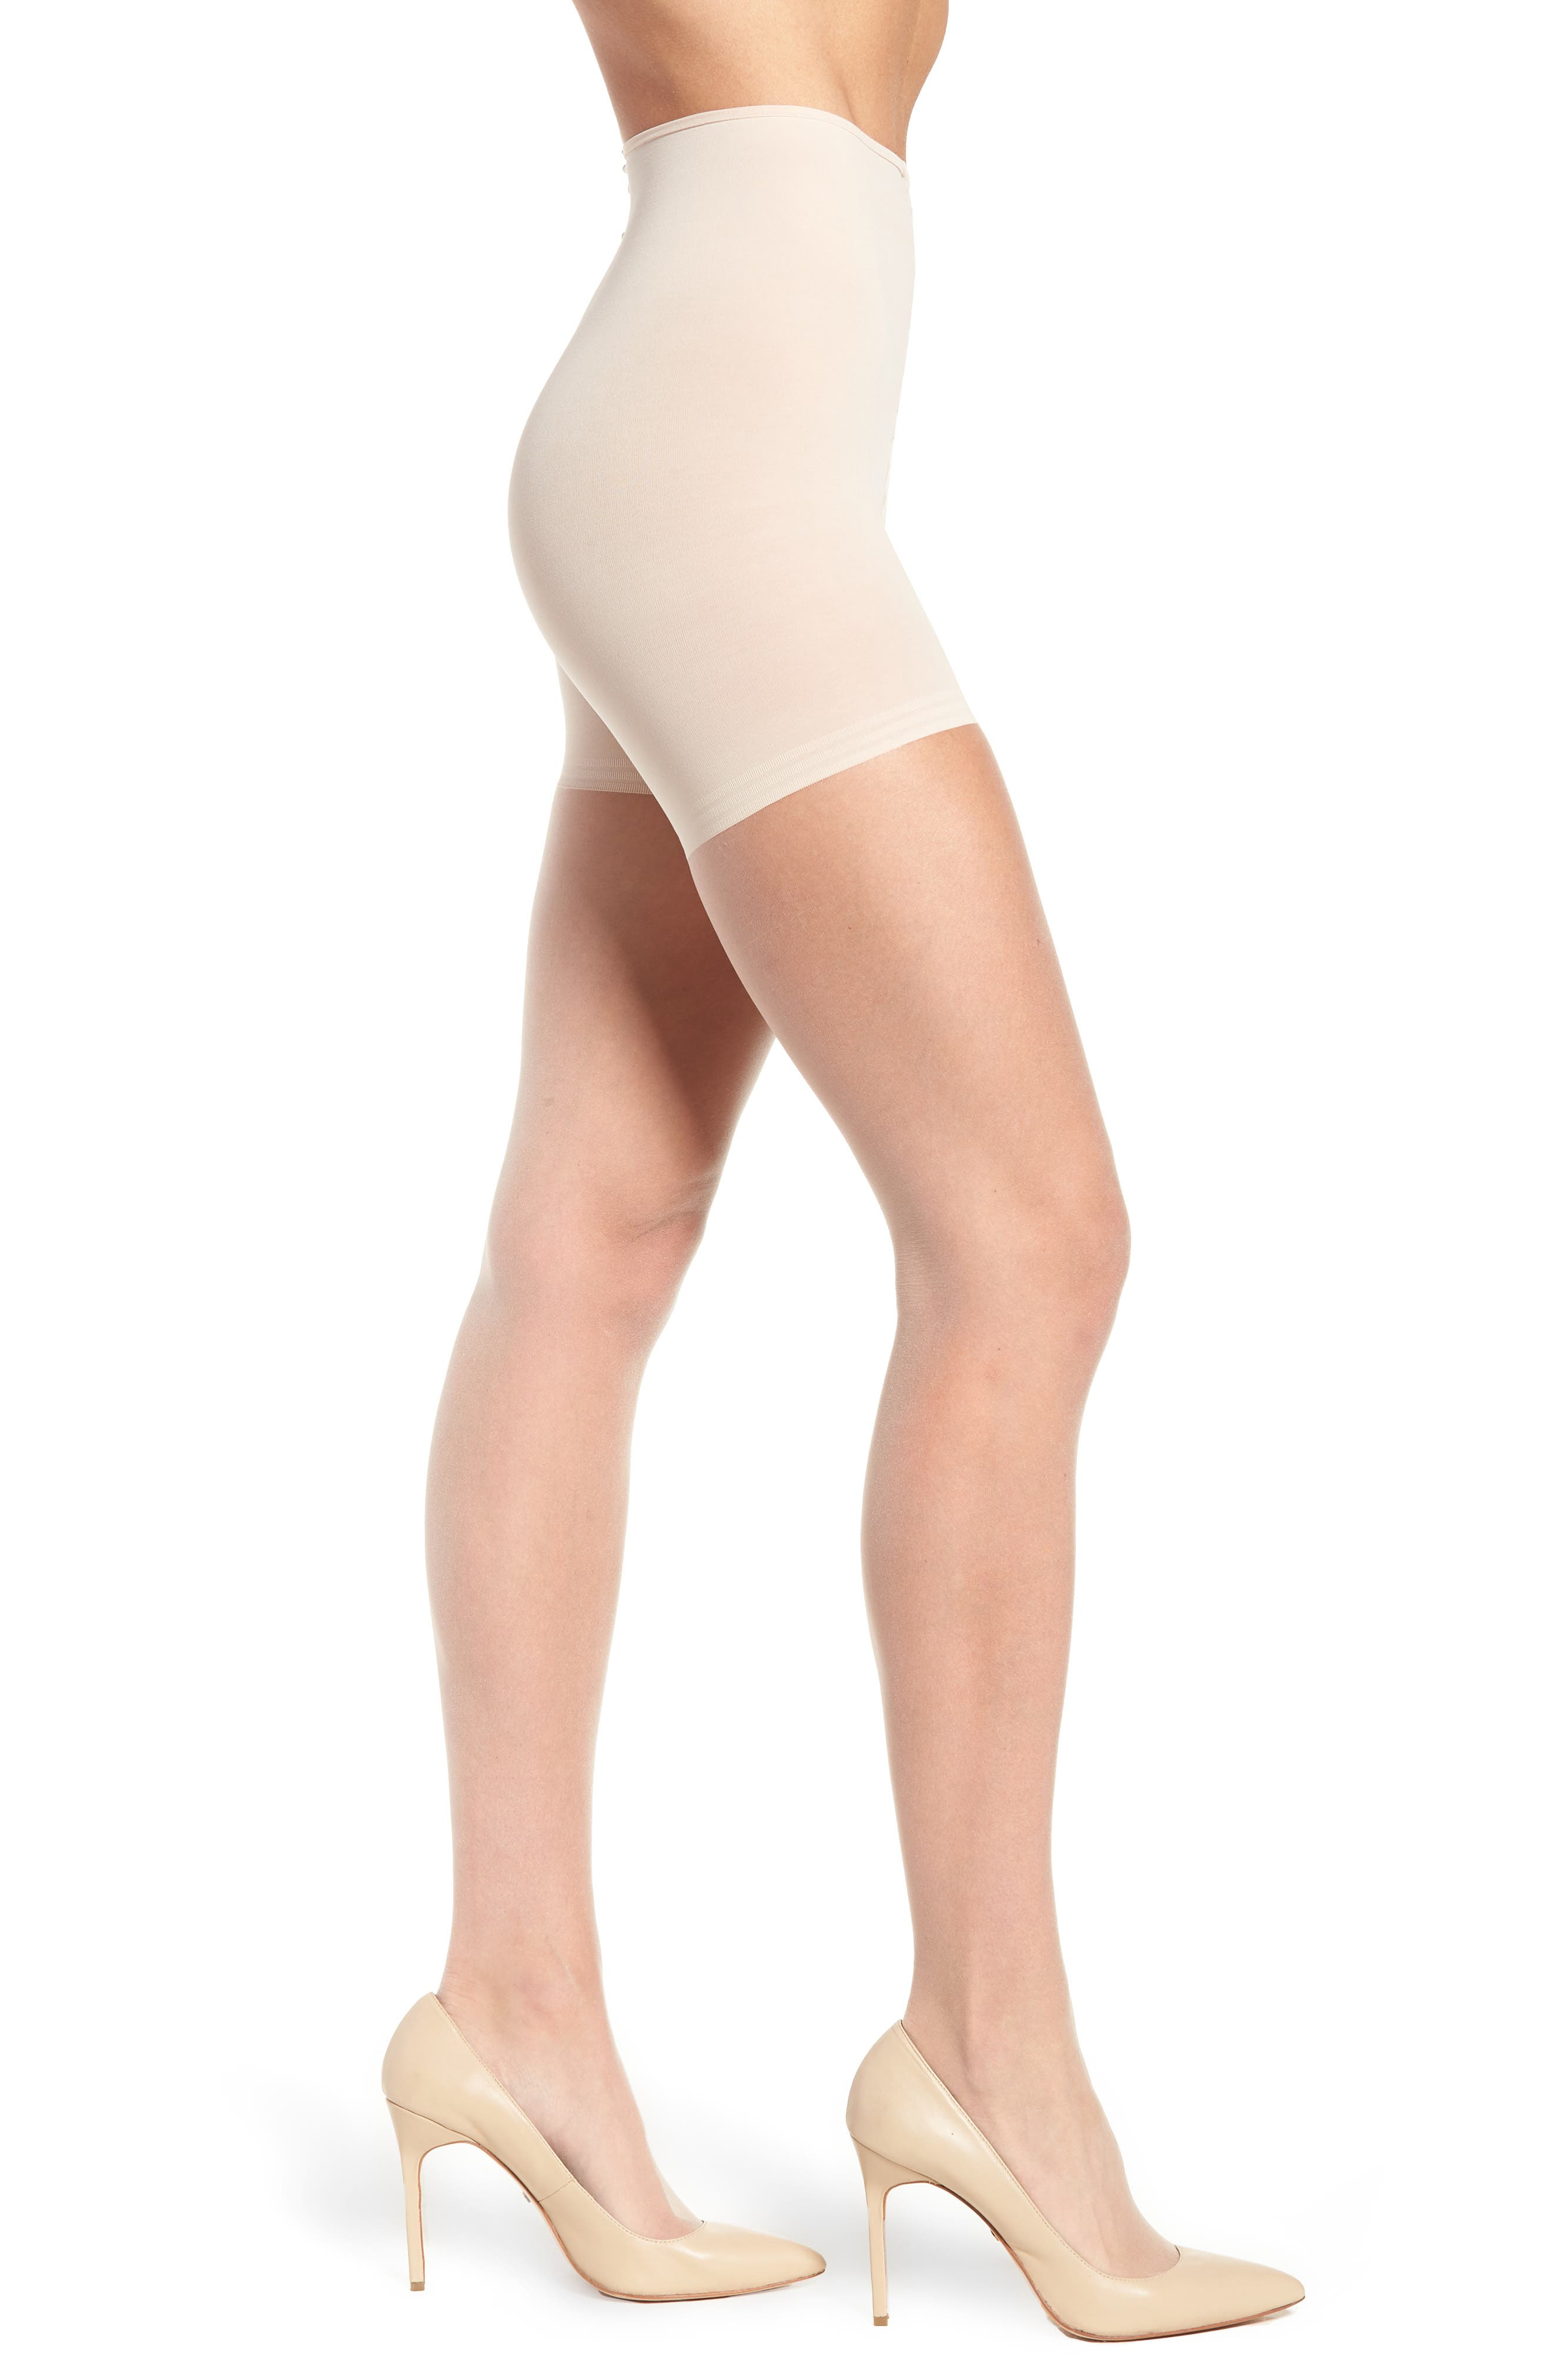 The Nudes Whisper Weight Control Top Pantyhose,                         Main,                         color, TONE A01